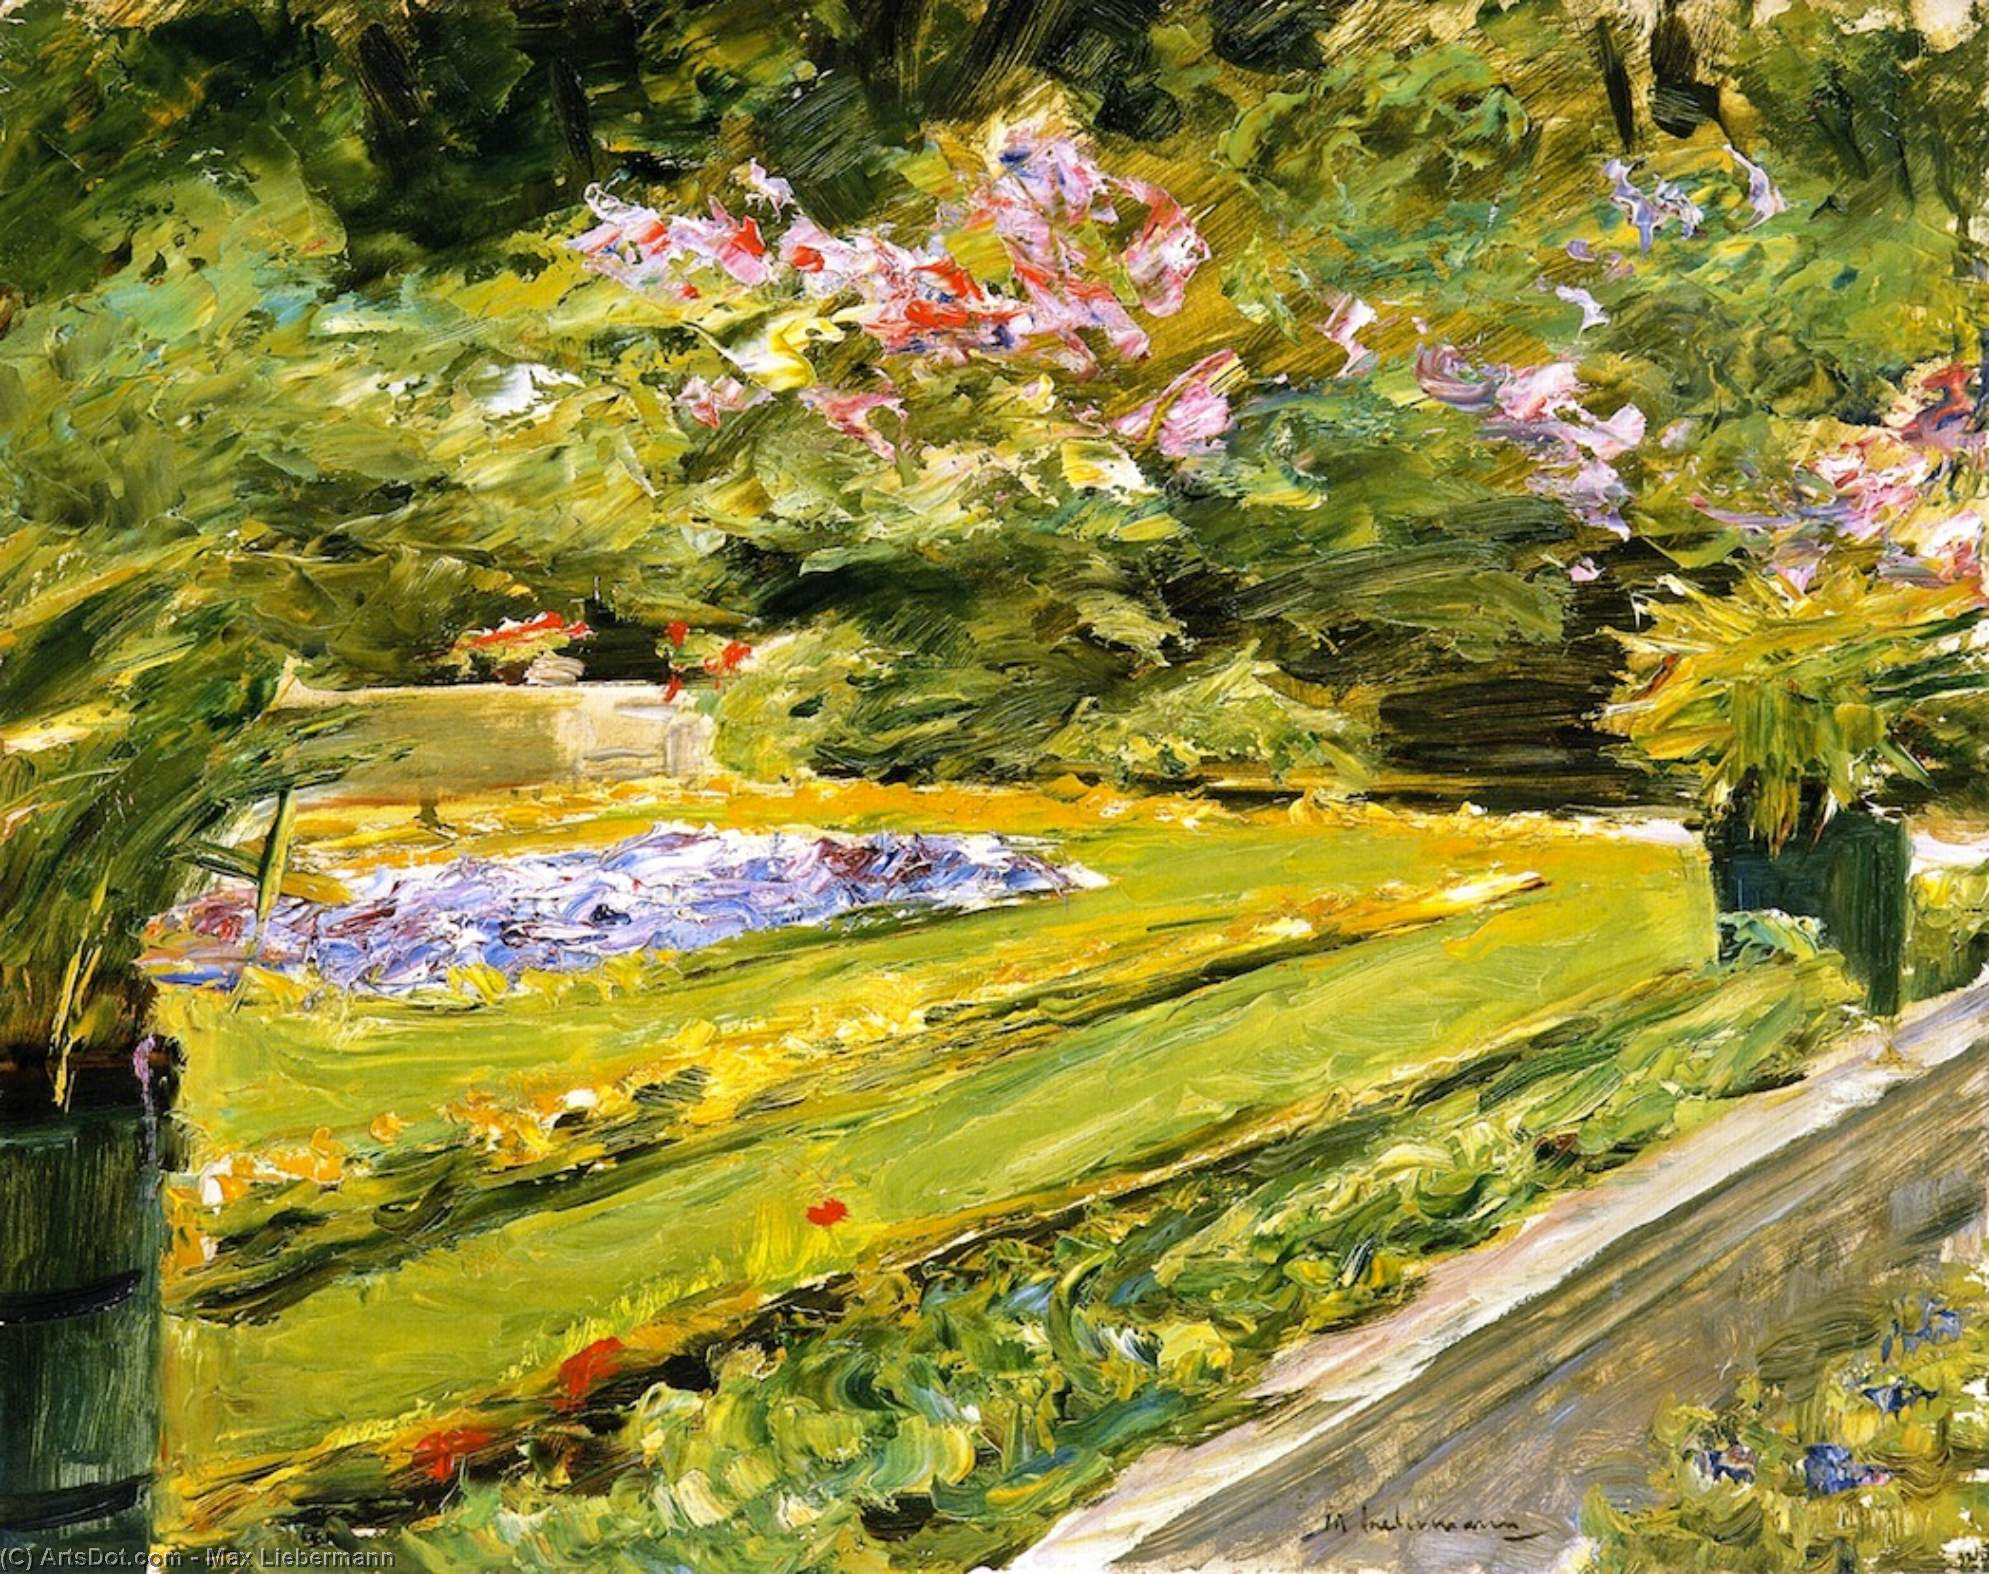 Wikioo.org - The Encyclopedia of Fine Arts - Painting, Artwork by Max Liebermann - The Terrace in the Wannsee Garden toward the Northwest